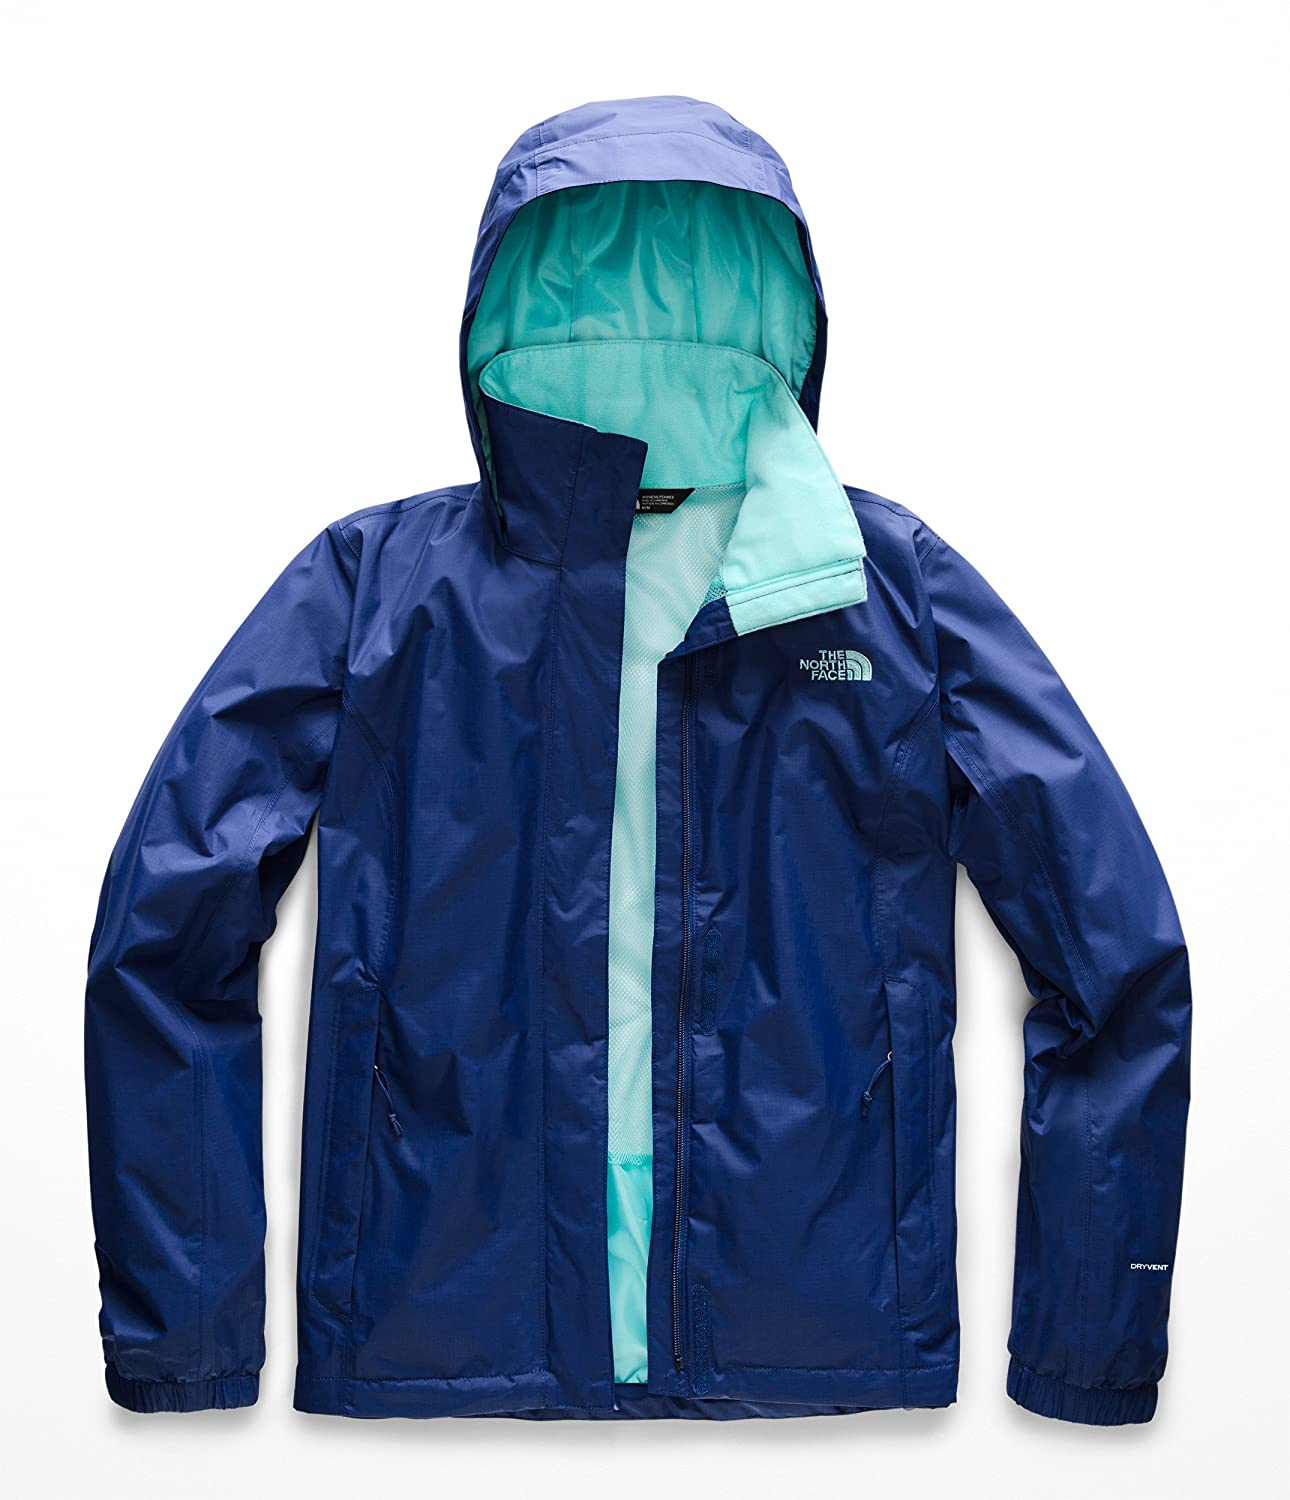 64f632c79 The North Face Women's Resolve 2 Jacket